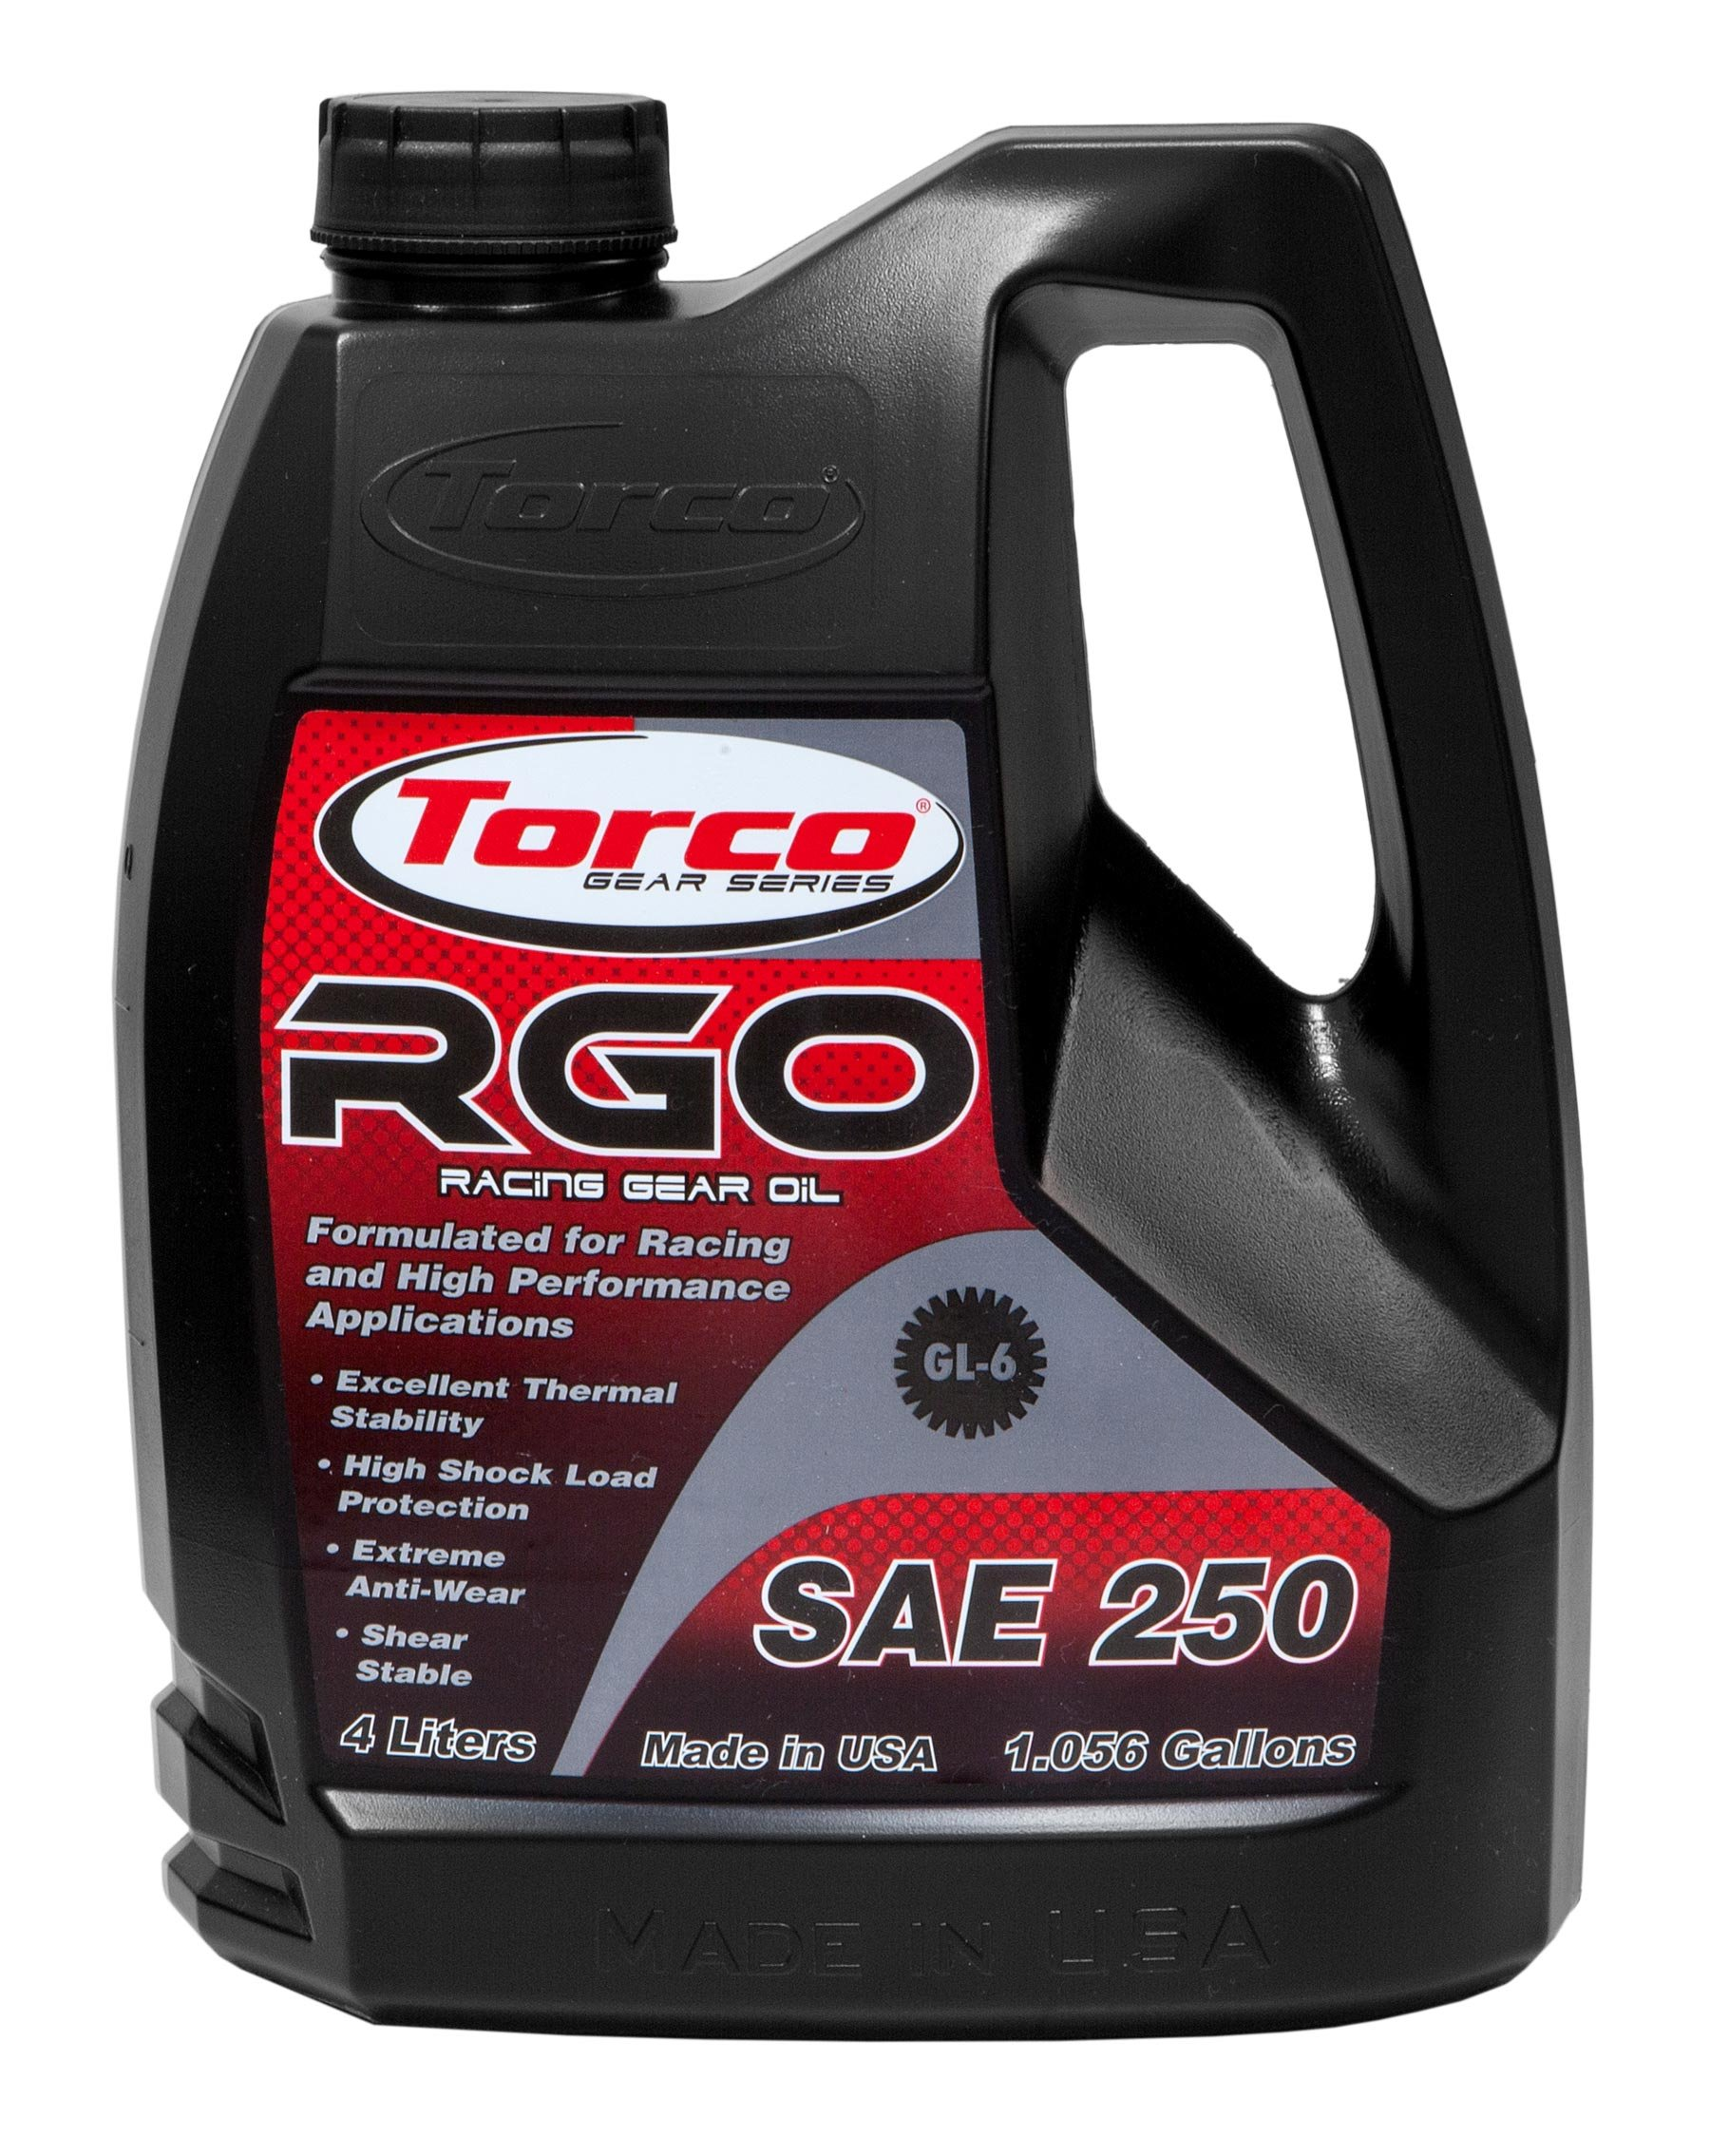 Torco A240250E Racing Gear Oil, 5 gallon by Torco